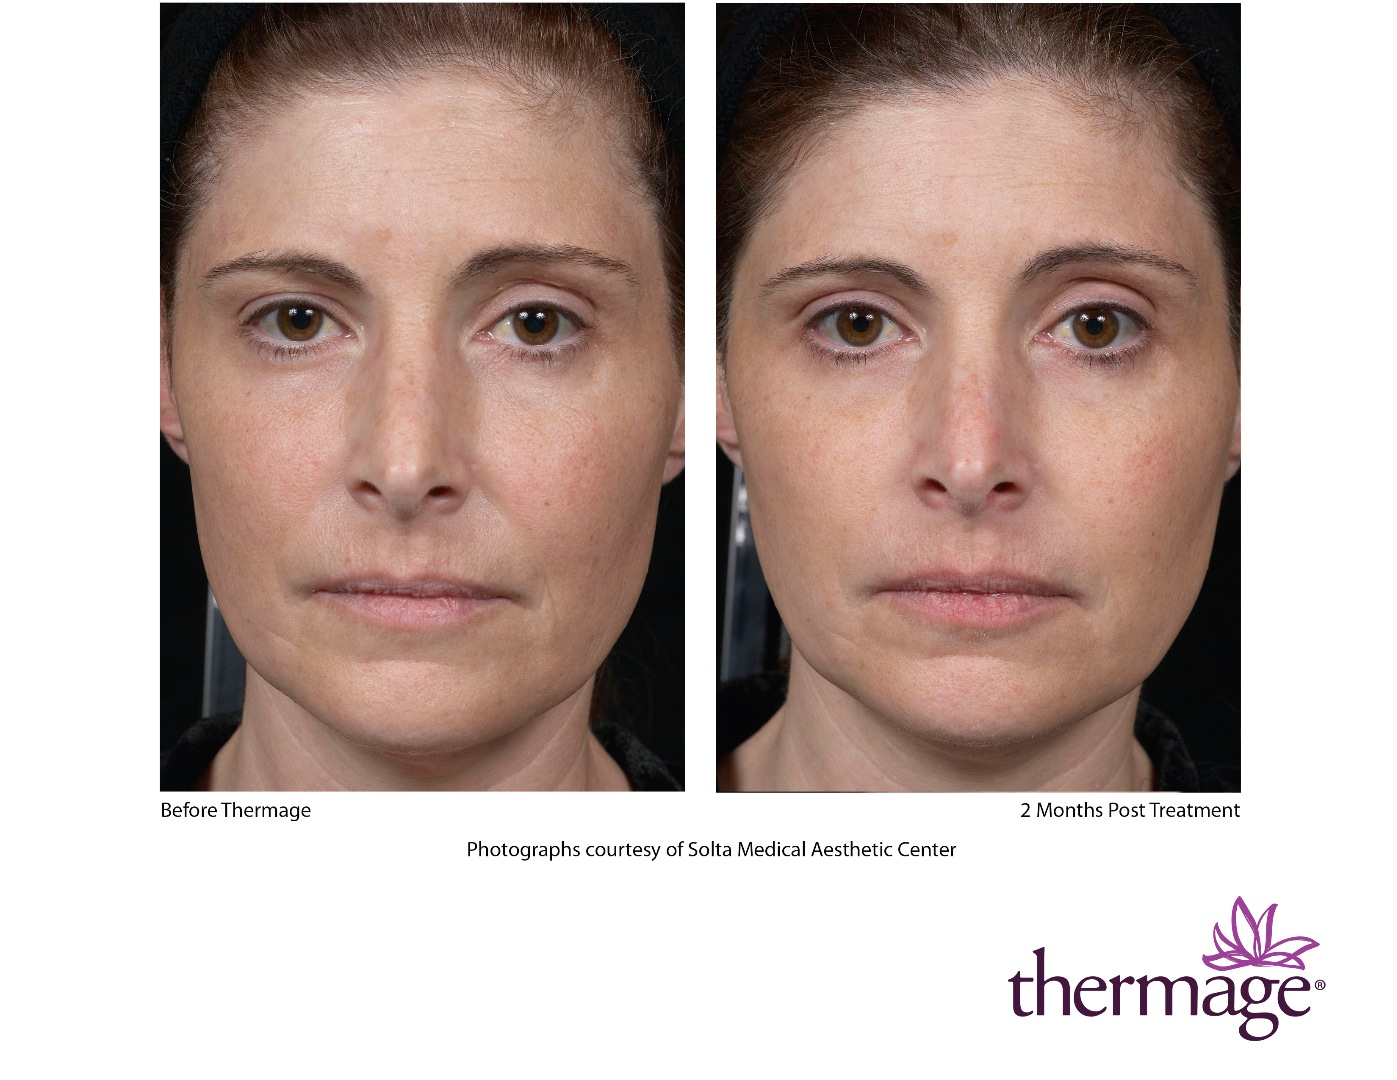 Before and After Dermatology Case Photos - Chicago Thermage before after pictures